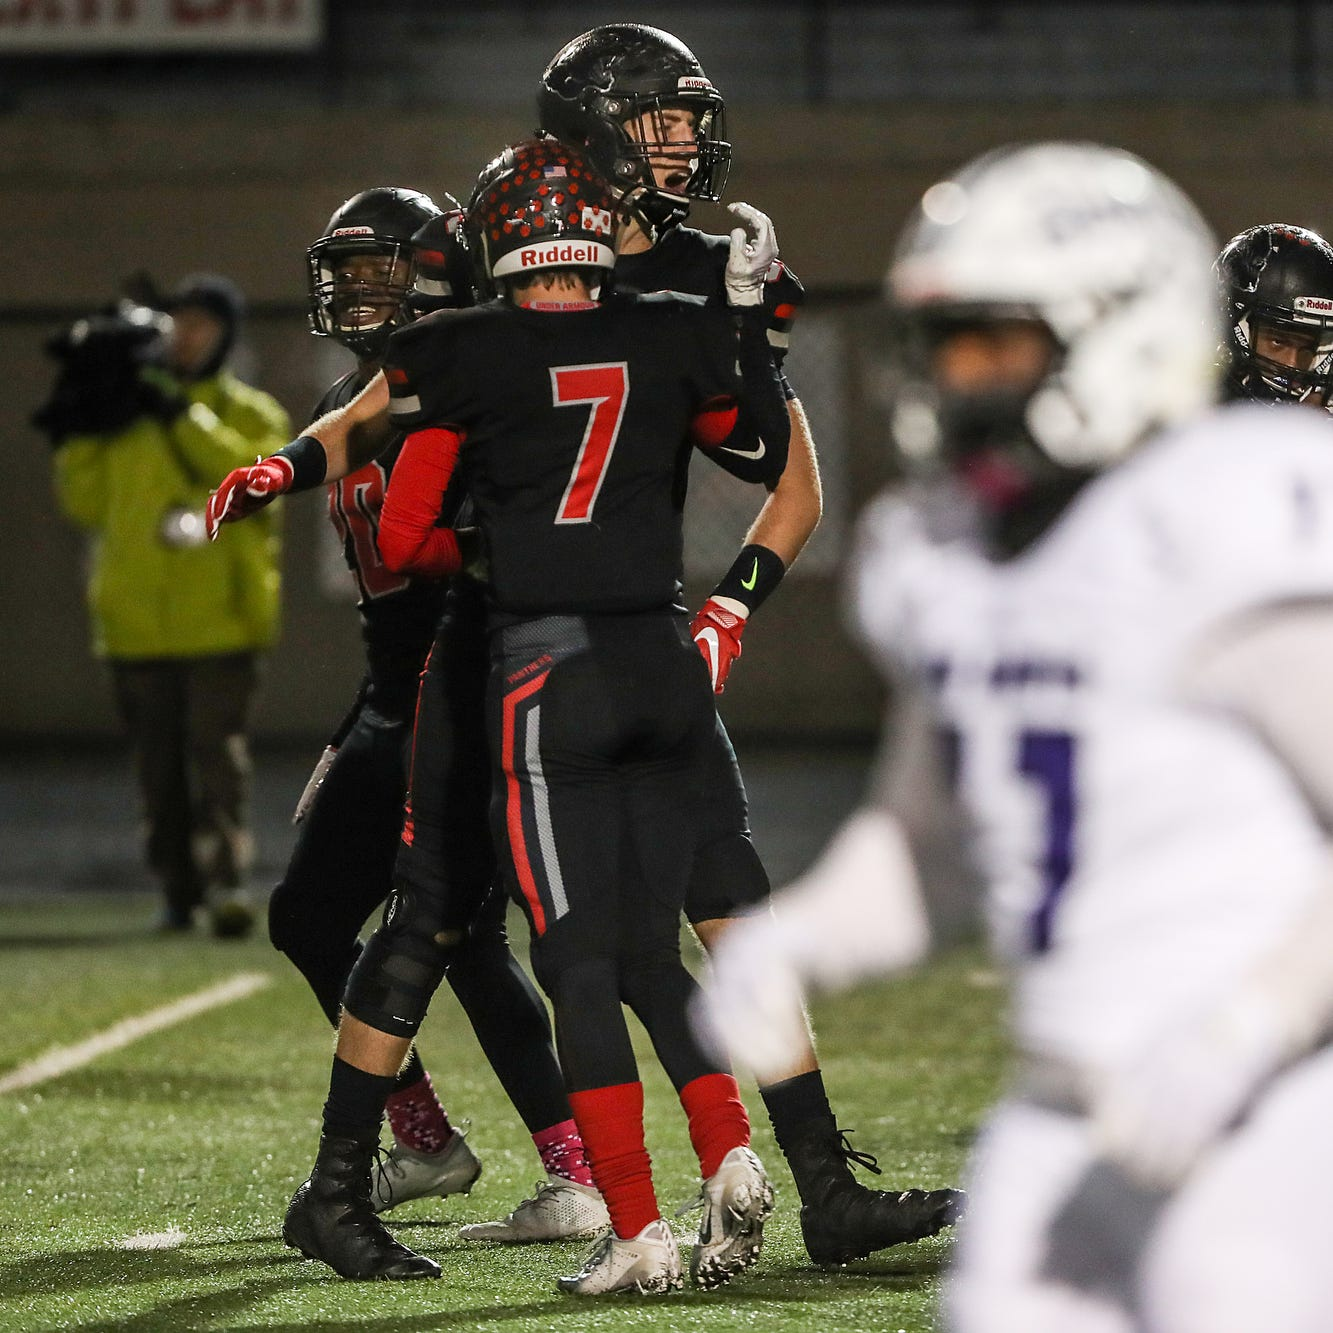 The North Central Panthers celebrate after recovering a fumble on a Giants first and goal play in the second half of the game at North Central High School in Indianapolis, Oct. 12, 2018. North Central won, 38-23.